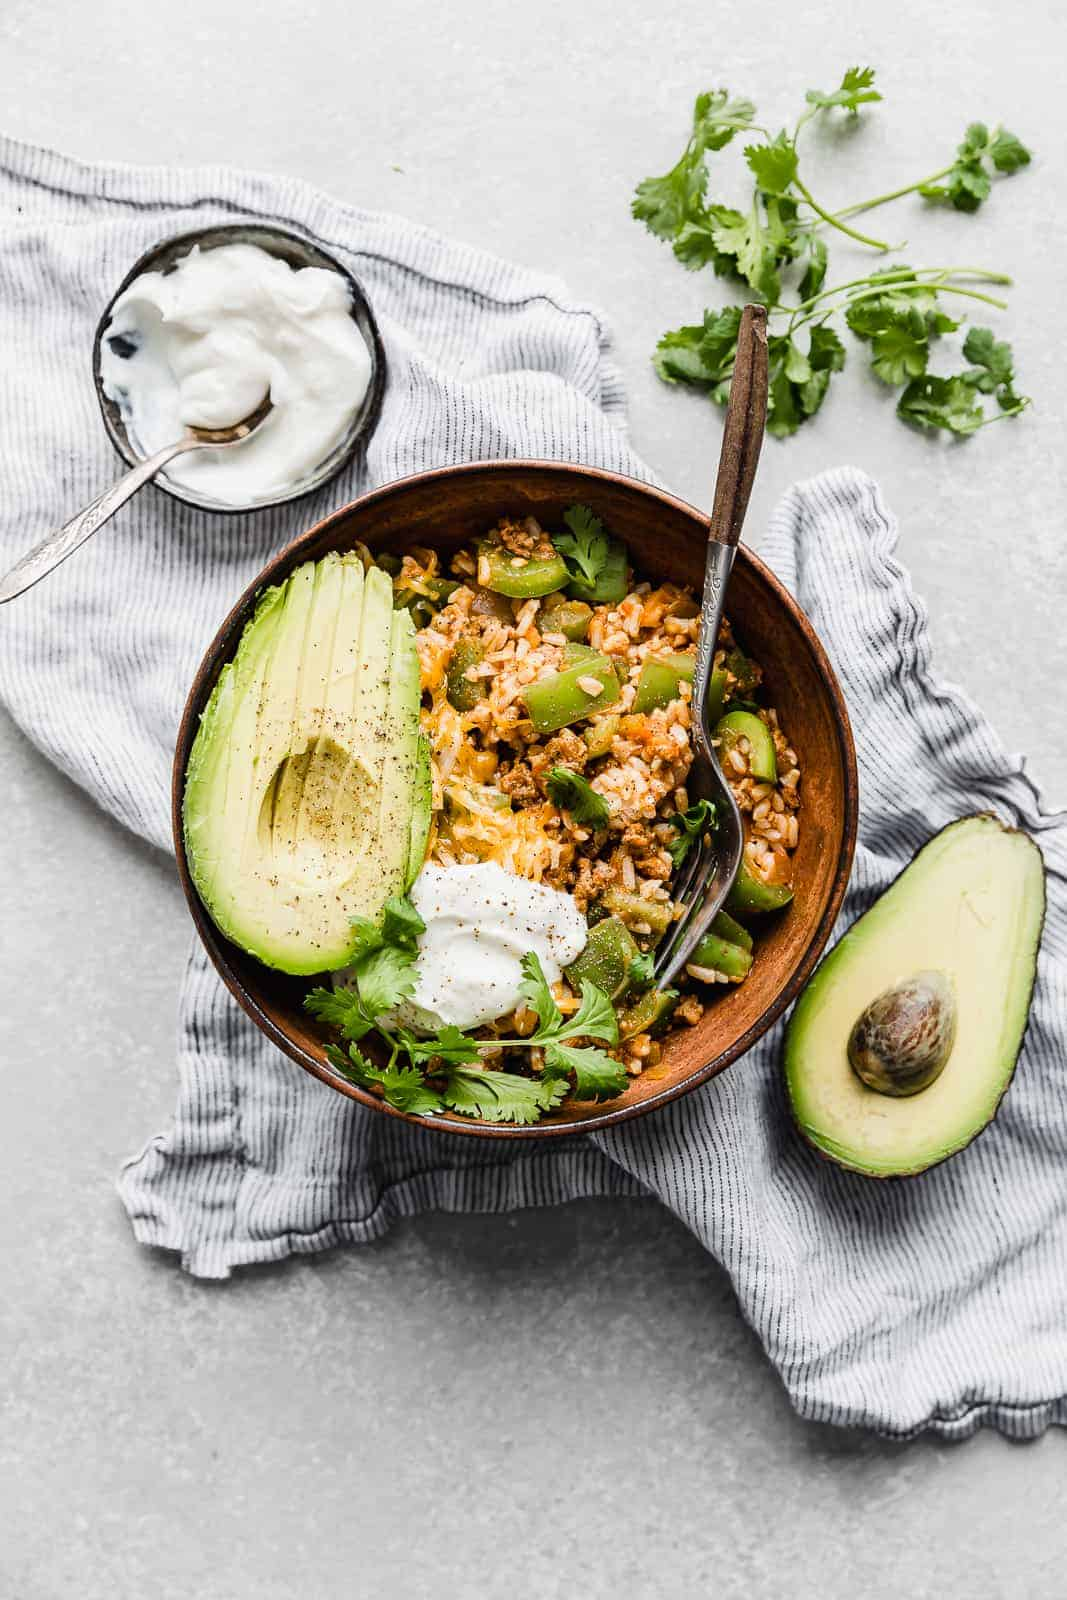 Deconstructed Stuffed Peppers in a brown bowl with a sliced avocado and cilantro for garnish.